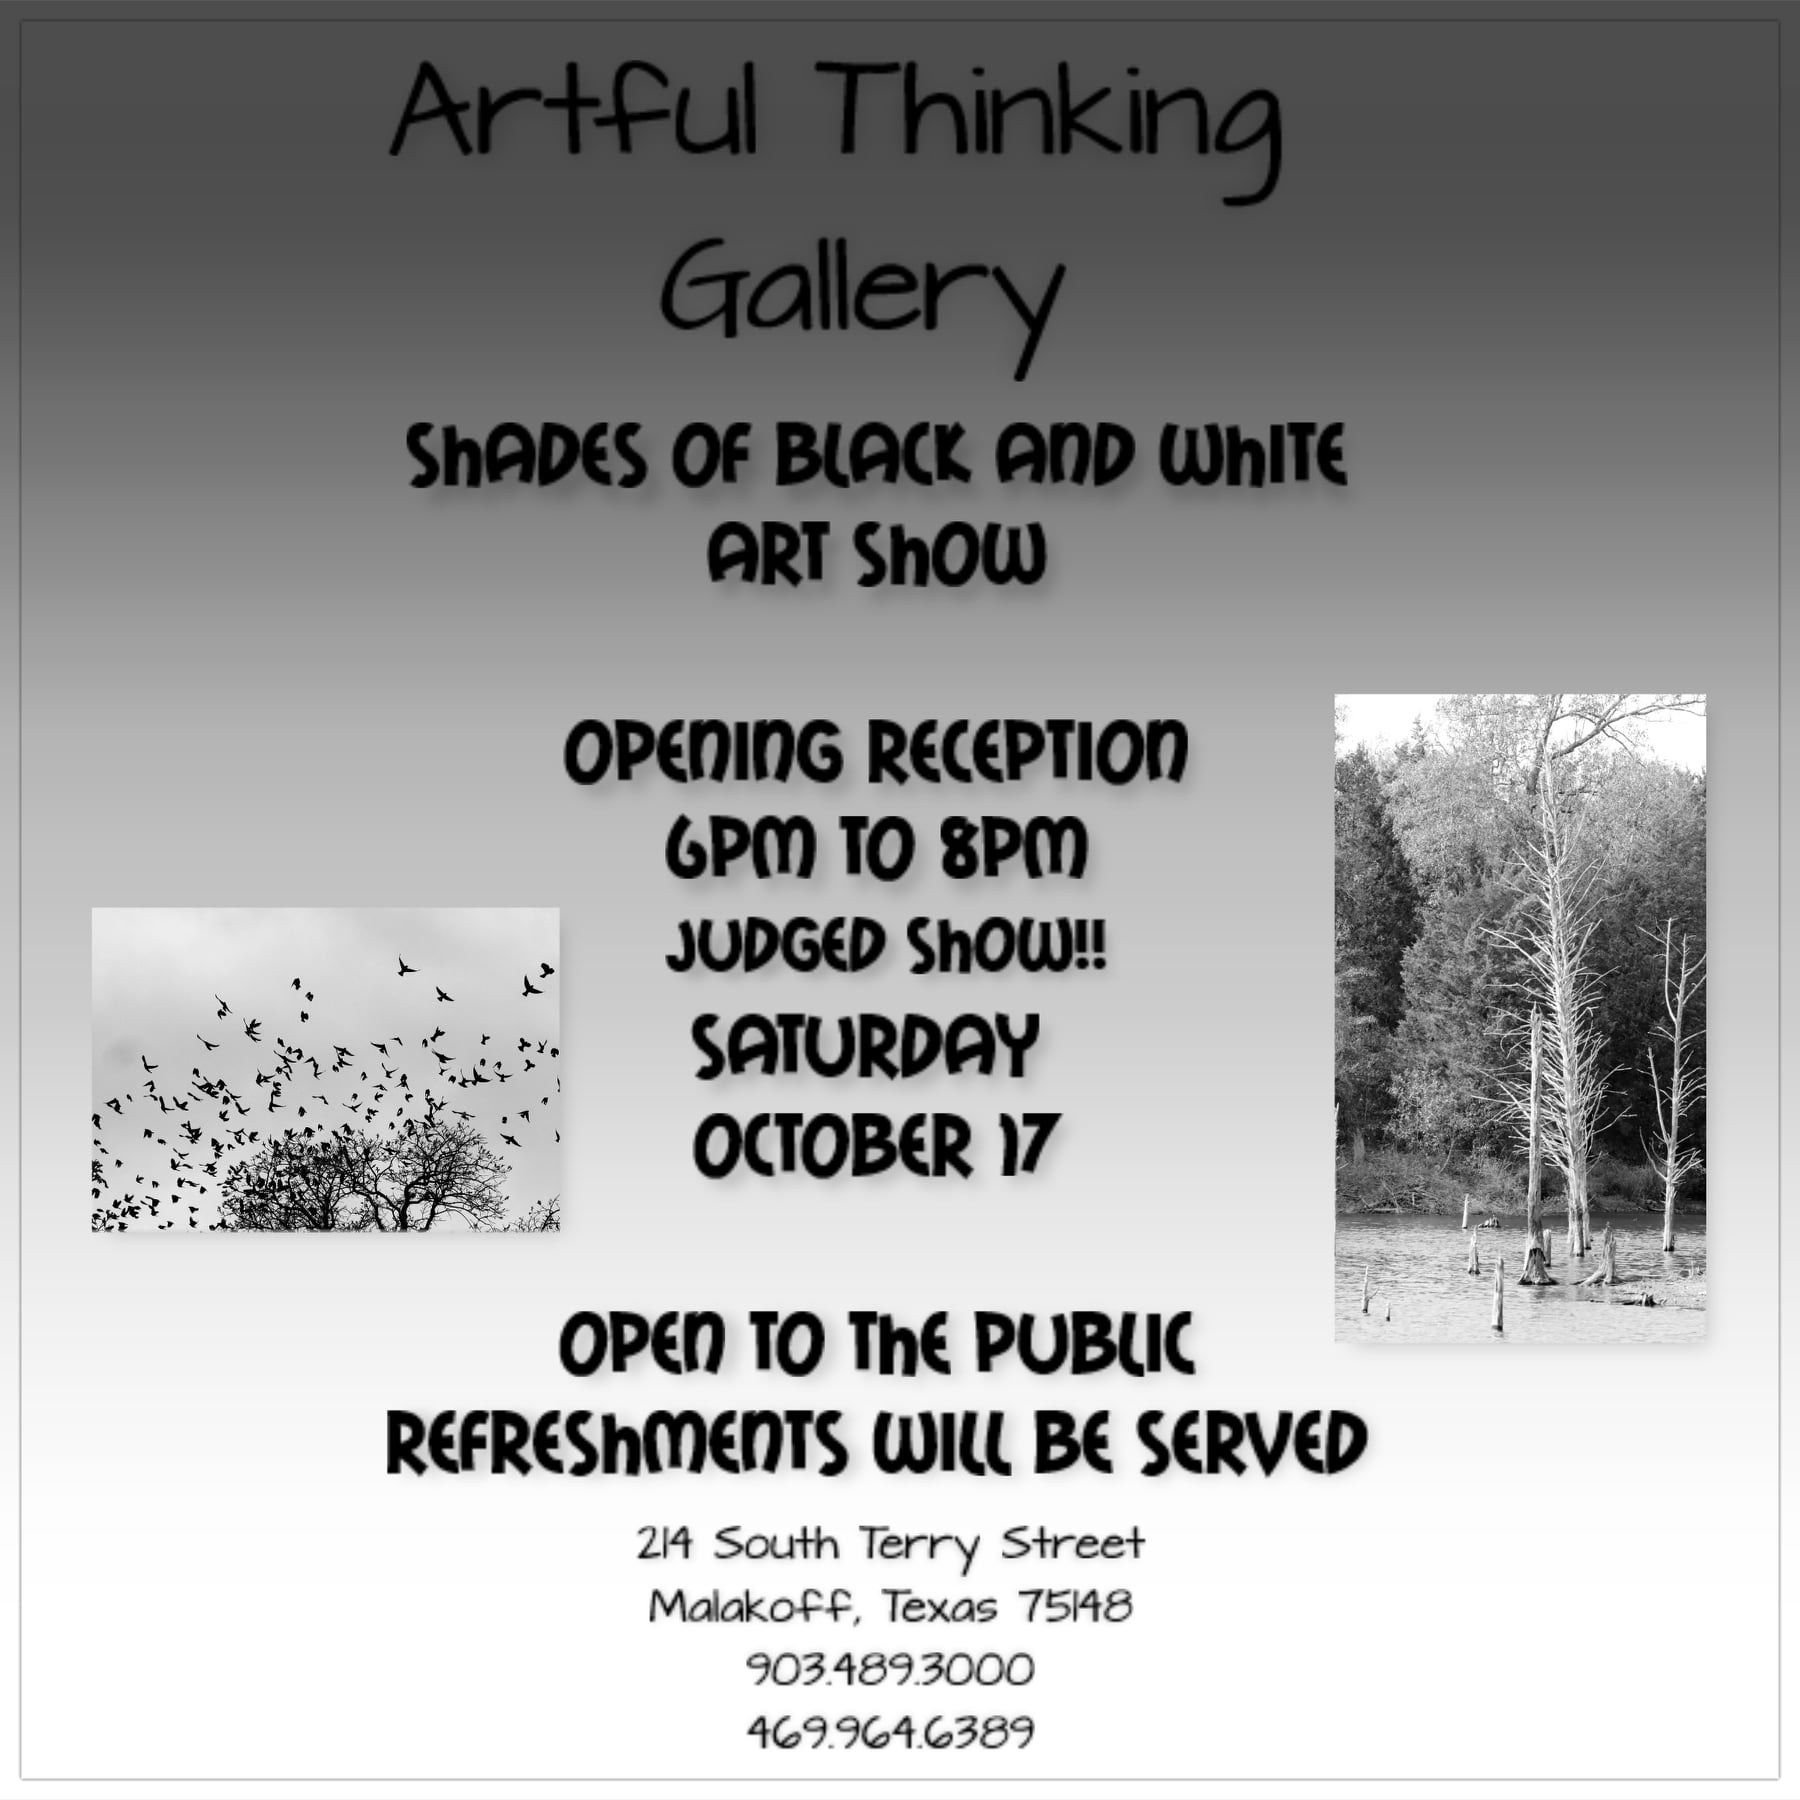 Malakoff To Host Cornbread, 1 Charity Event & Professionally Judged Fine Art Contest 6 Shades of Black and white On The Lake Living